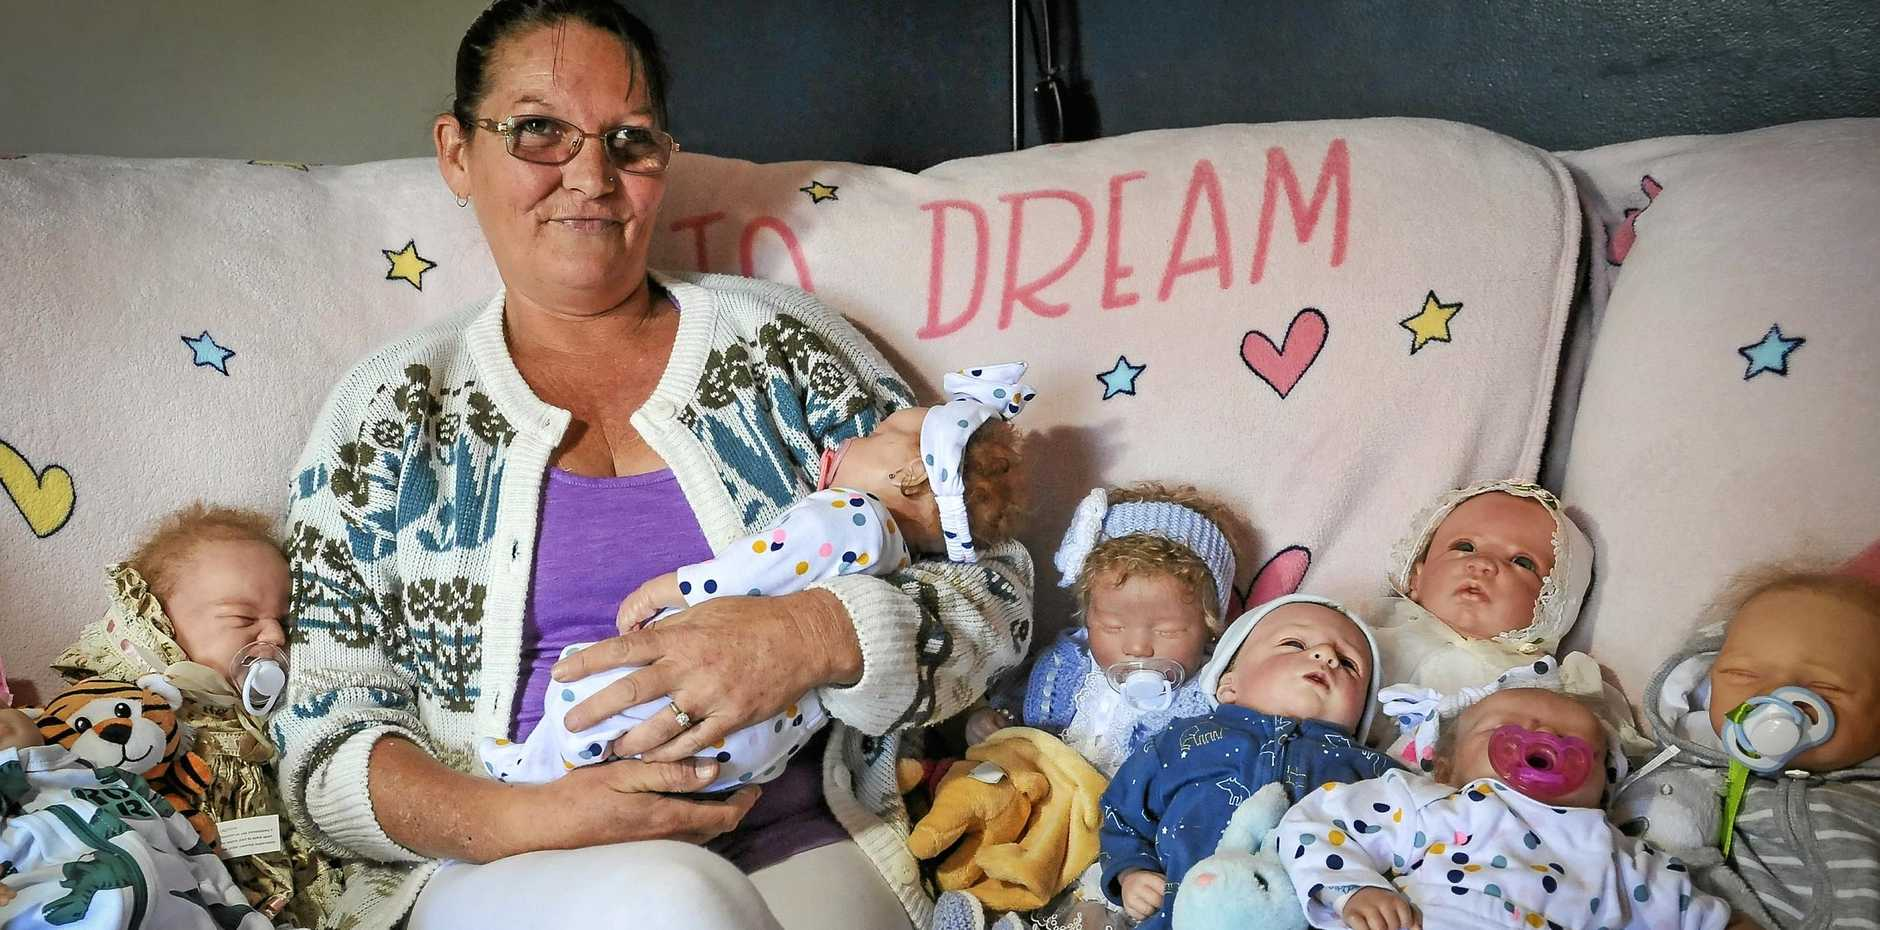 Mother-of-seven Kim Johnstone no longer has crippling anxiety after collecting re-born dolls 12 months ago.